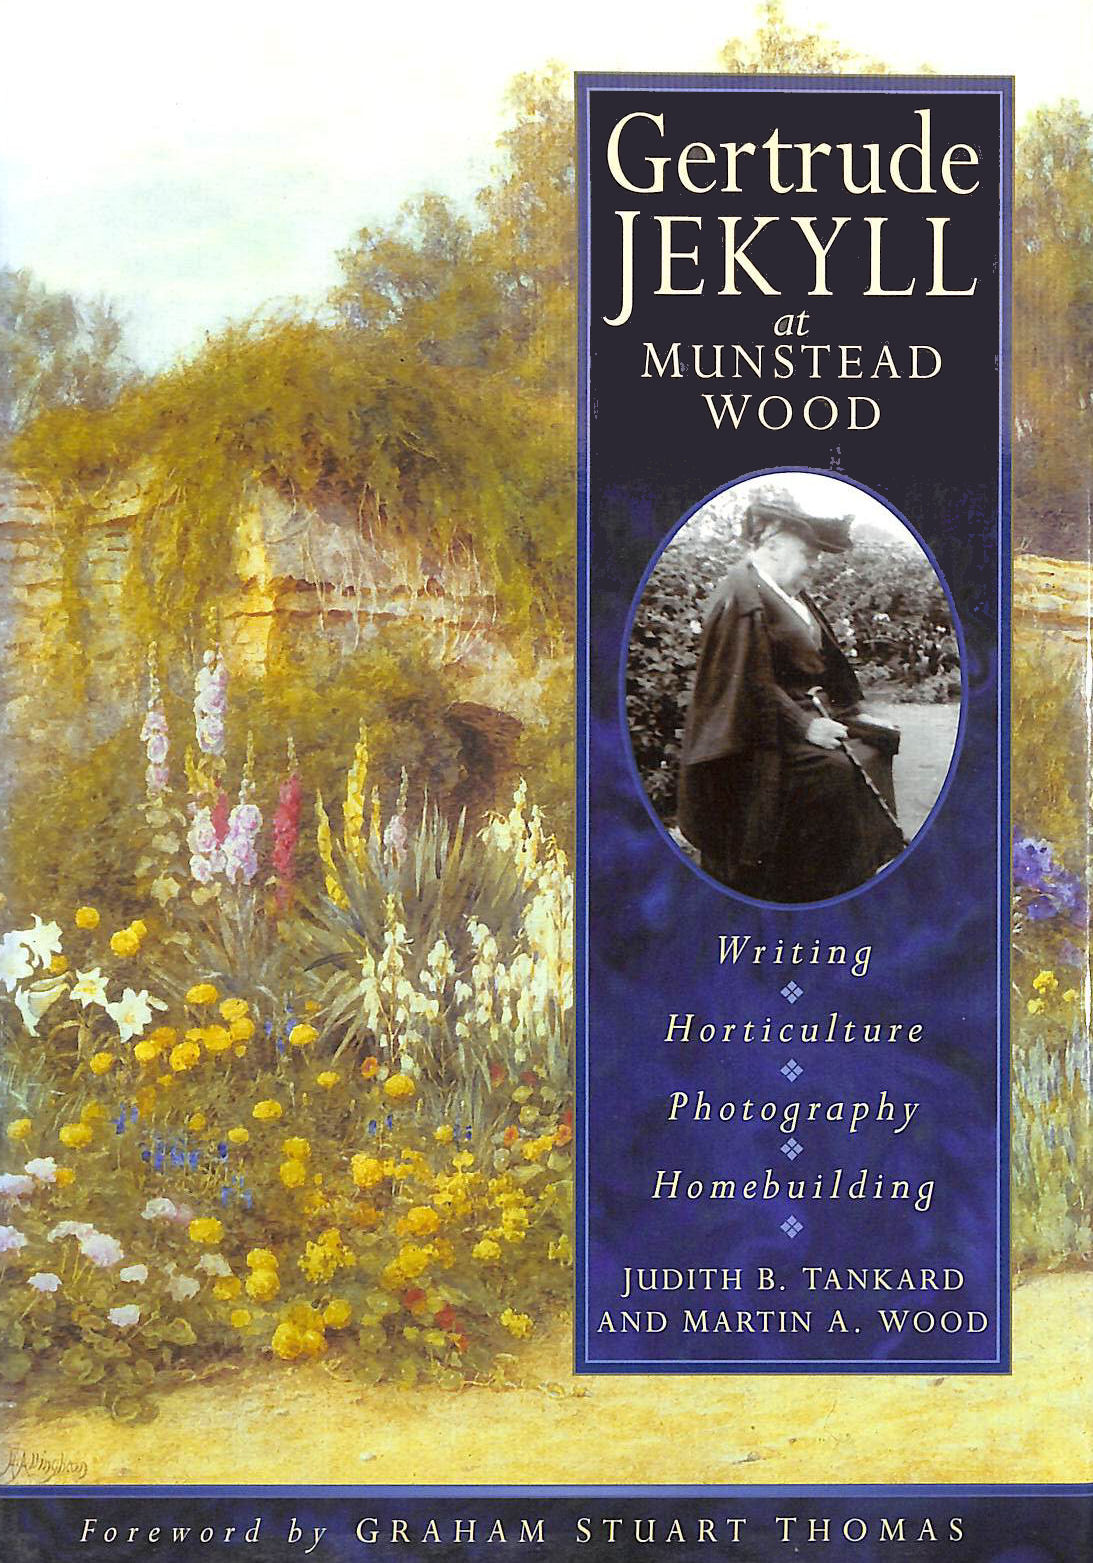 Image for Gertrude Jekyll at Munstead Wood: Writing, Horticulture, Photography, Homebuilding